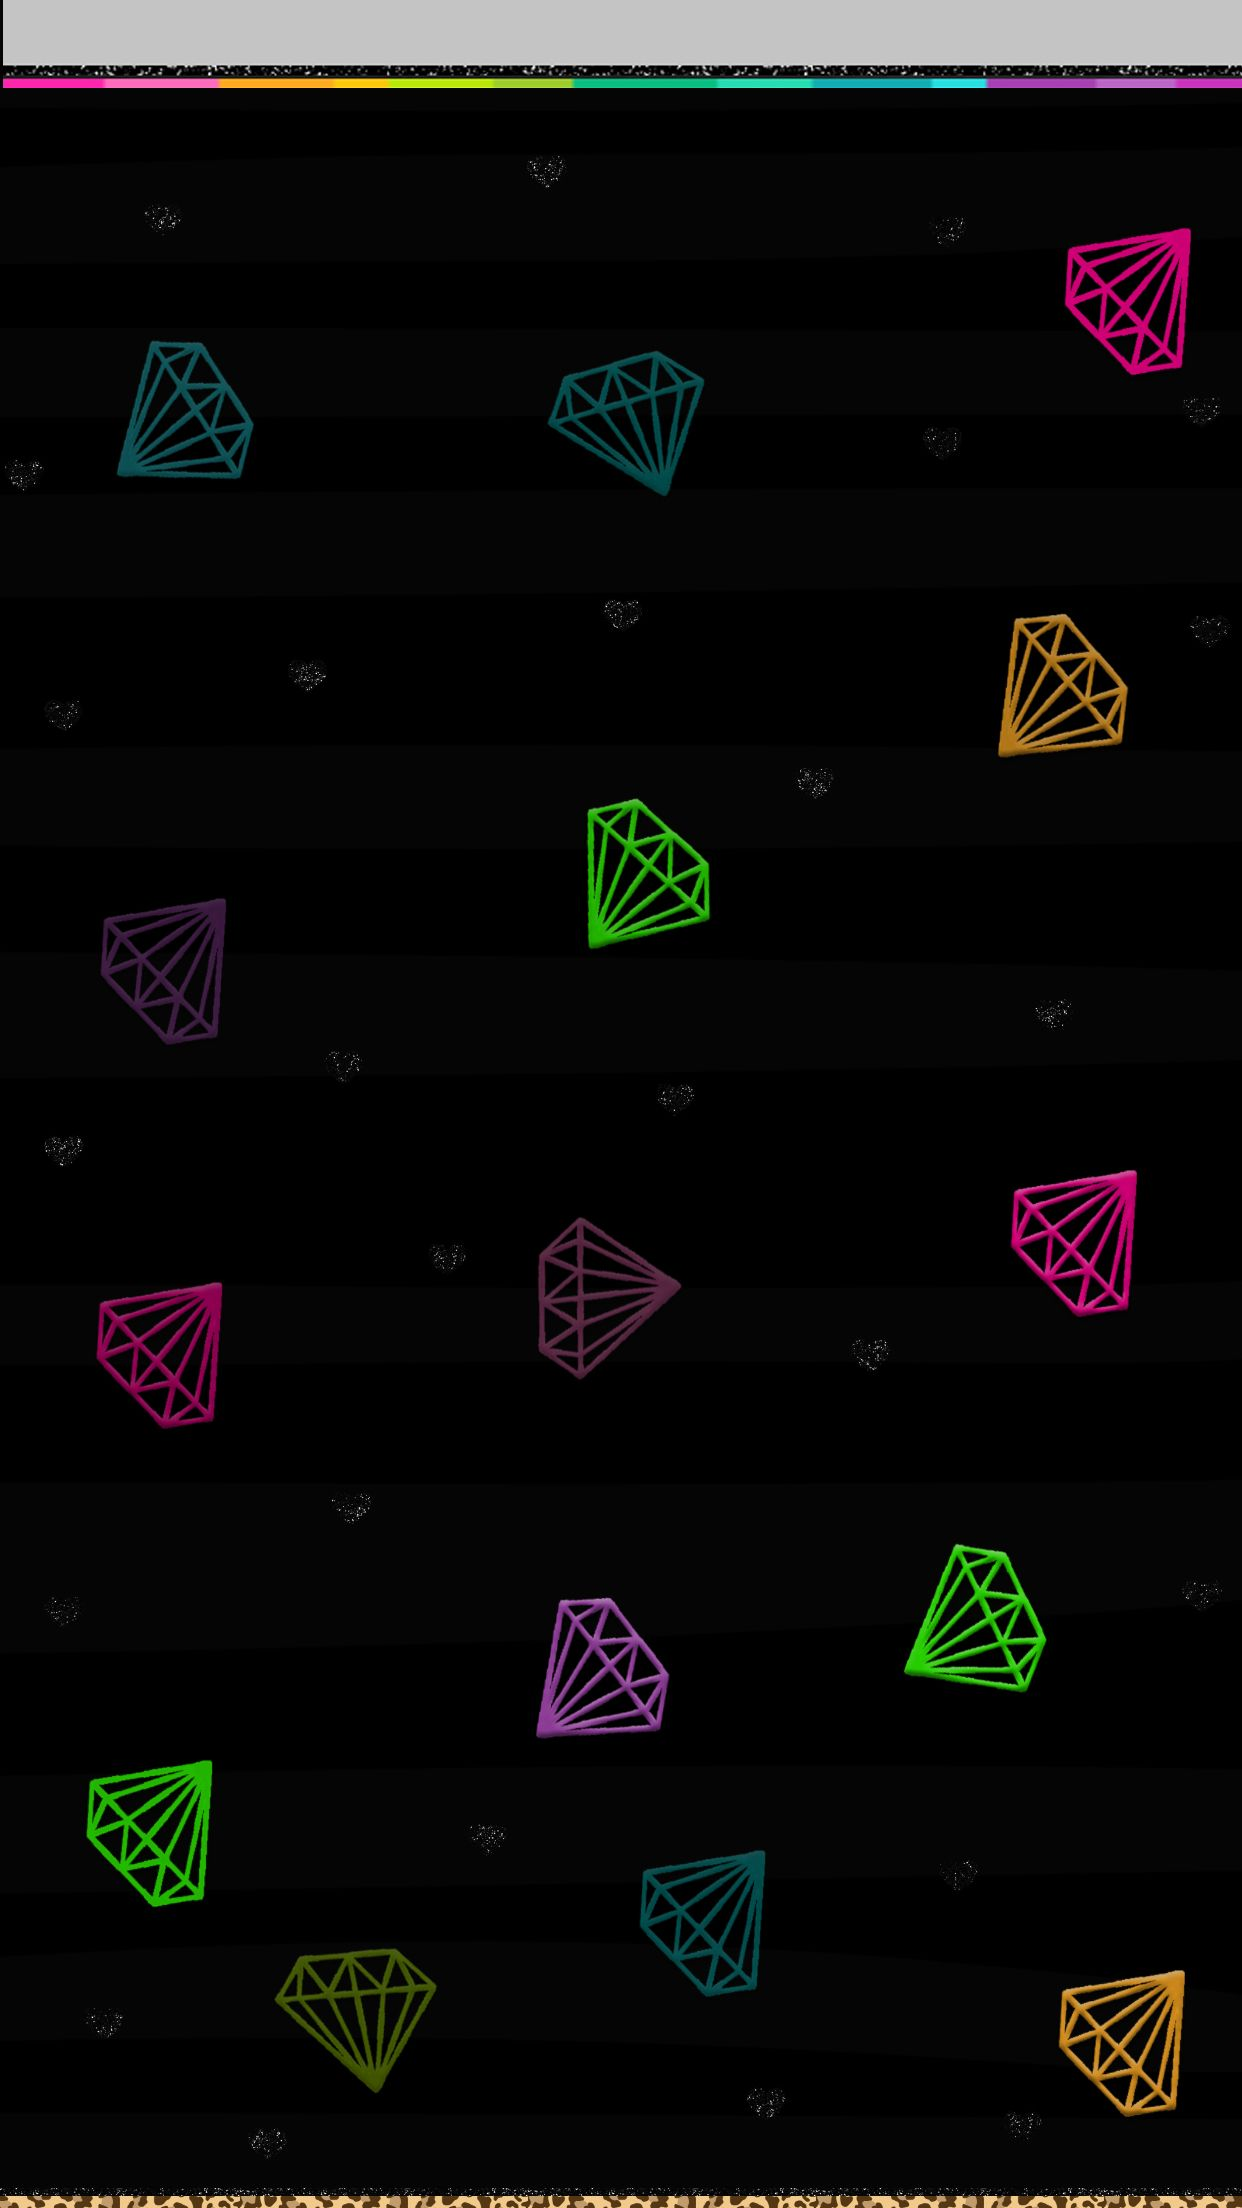 Android Wallpaper Diamond Wallpaper Android Wallpaper Cellphone Wallpaper Backgrounds